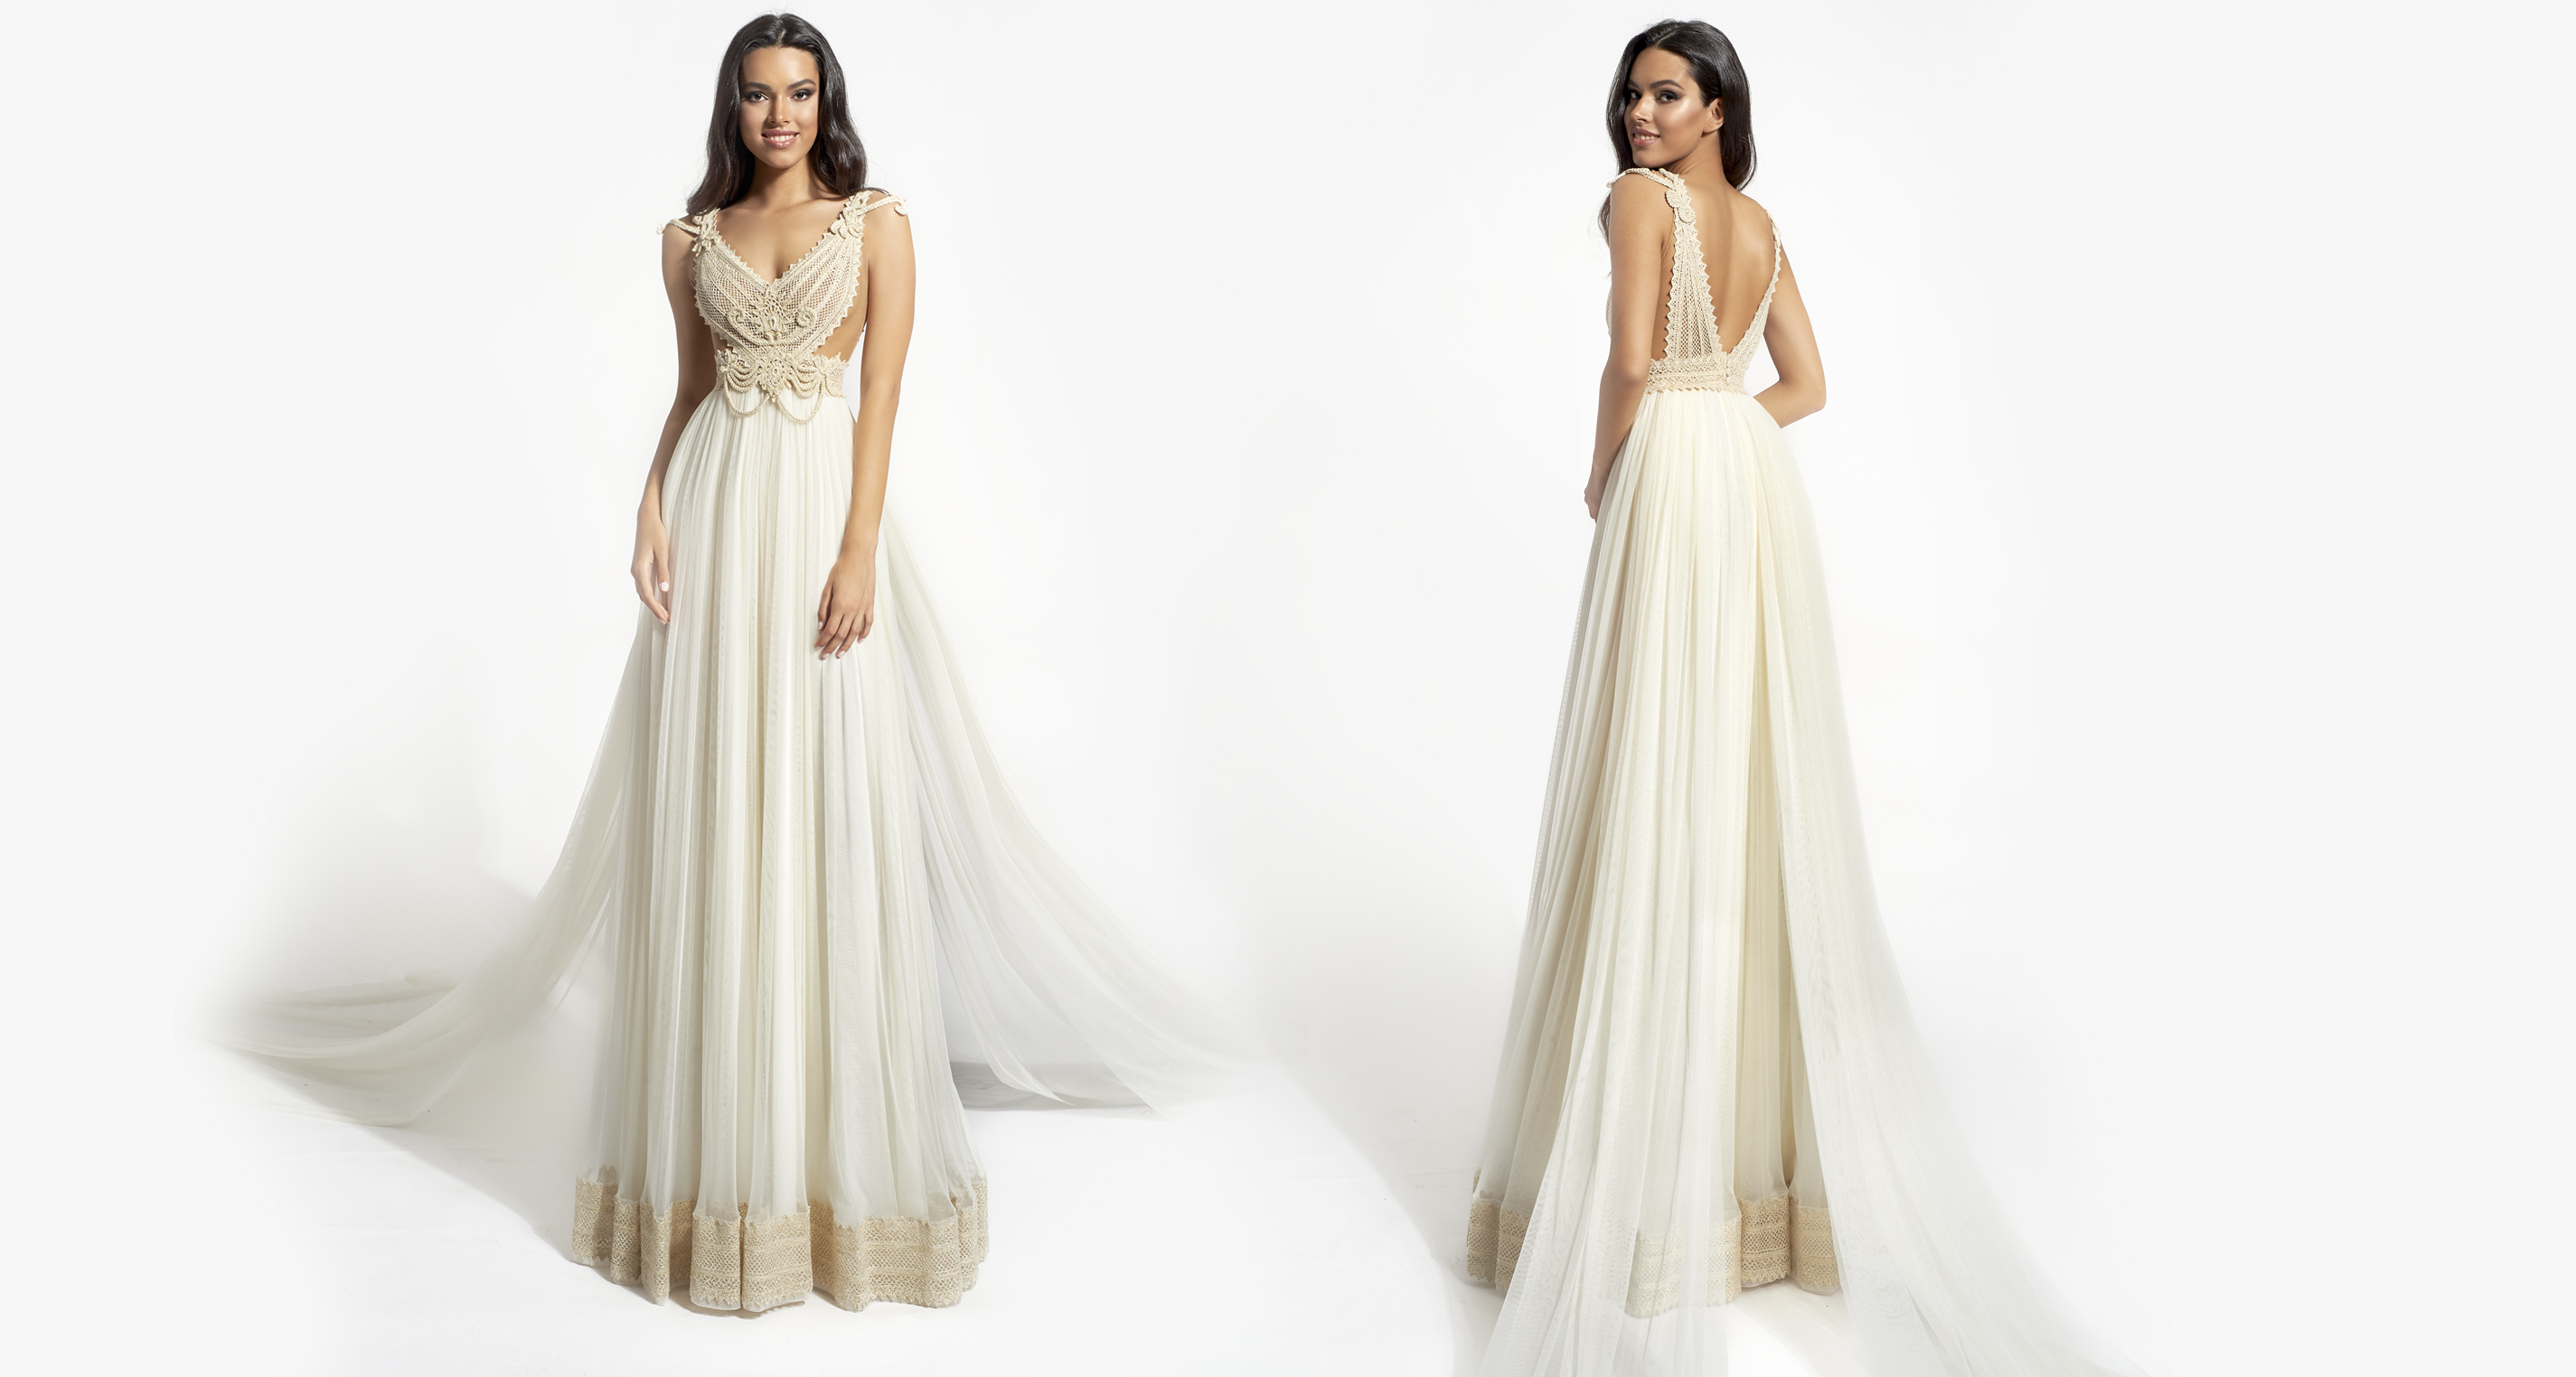 Aegle Opulence wedding dress from  Hellenic Vintage Opulence Collection